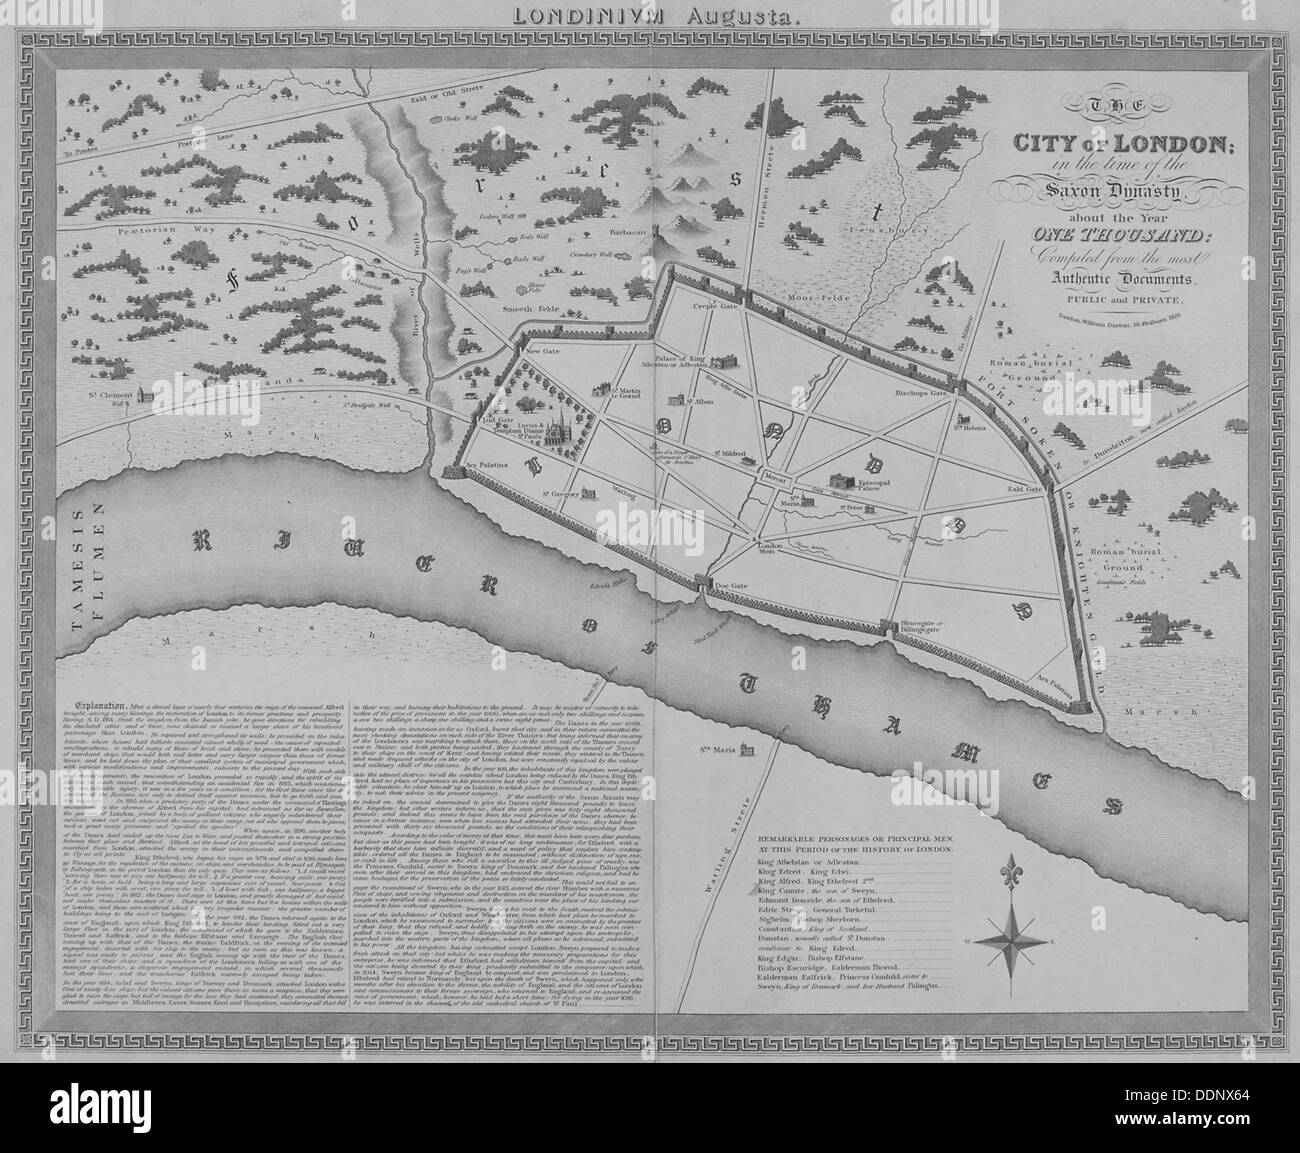 Map of London during the Saxon period, 1835. Artist: Anon - Stock Image